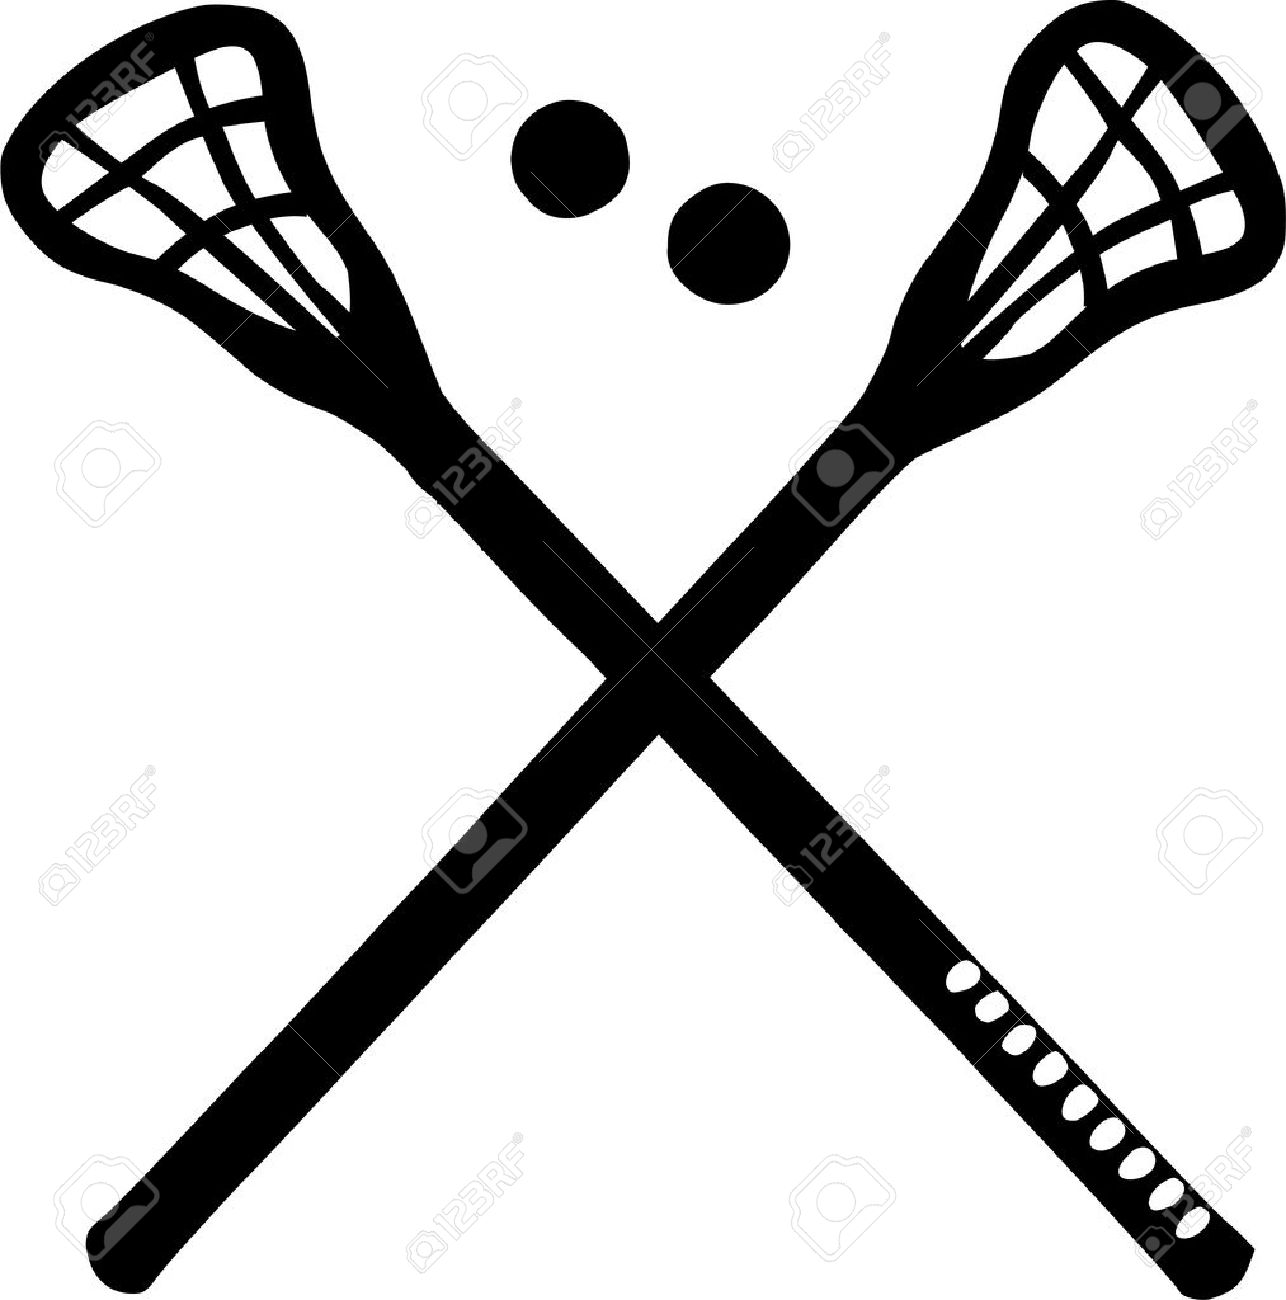 crossed lacrosse sticks royalty free cliparts vectors and stock rh 123rf com